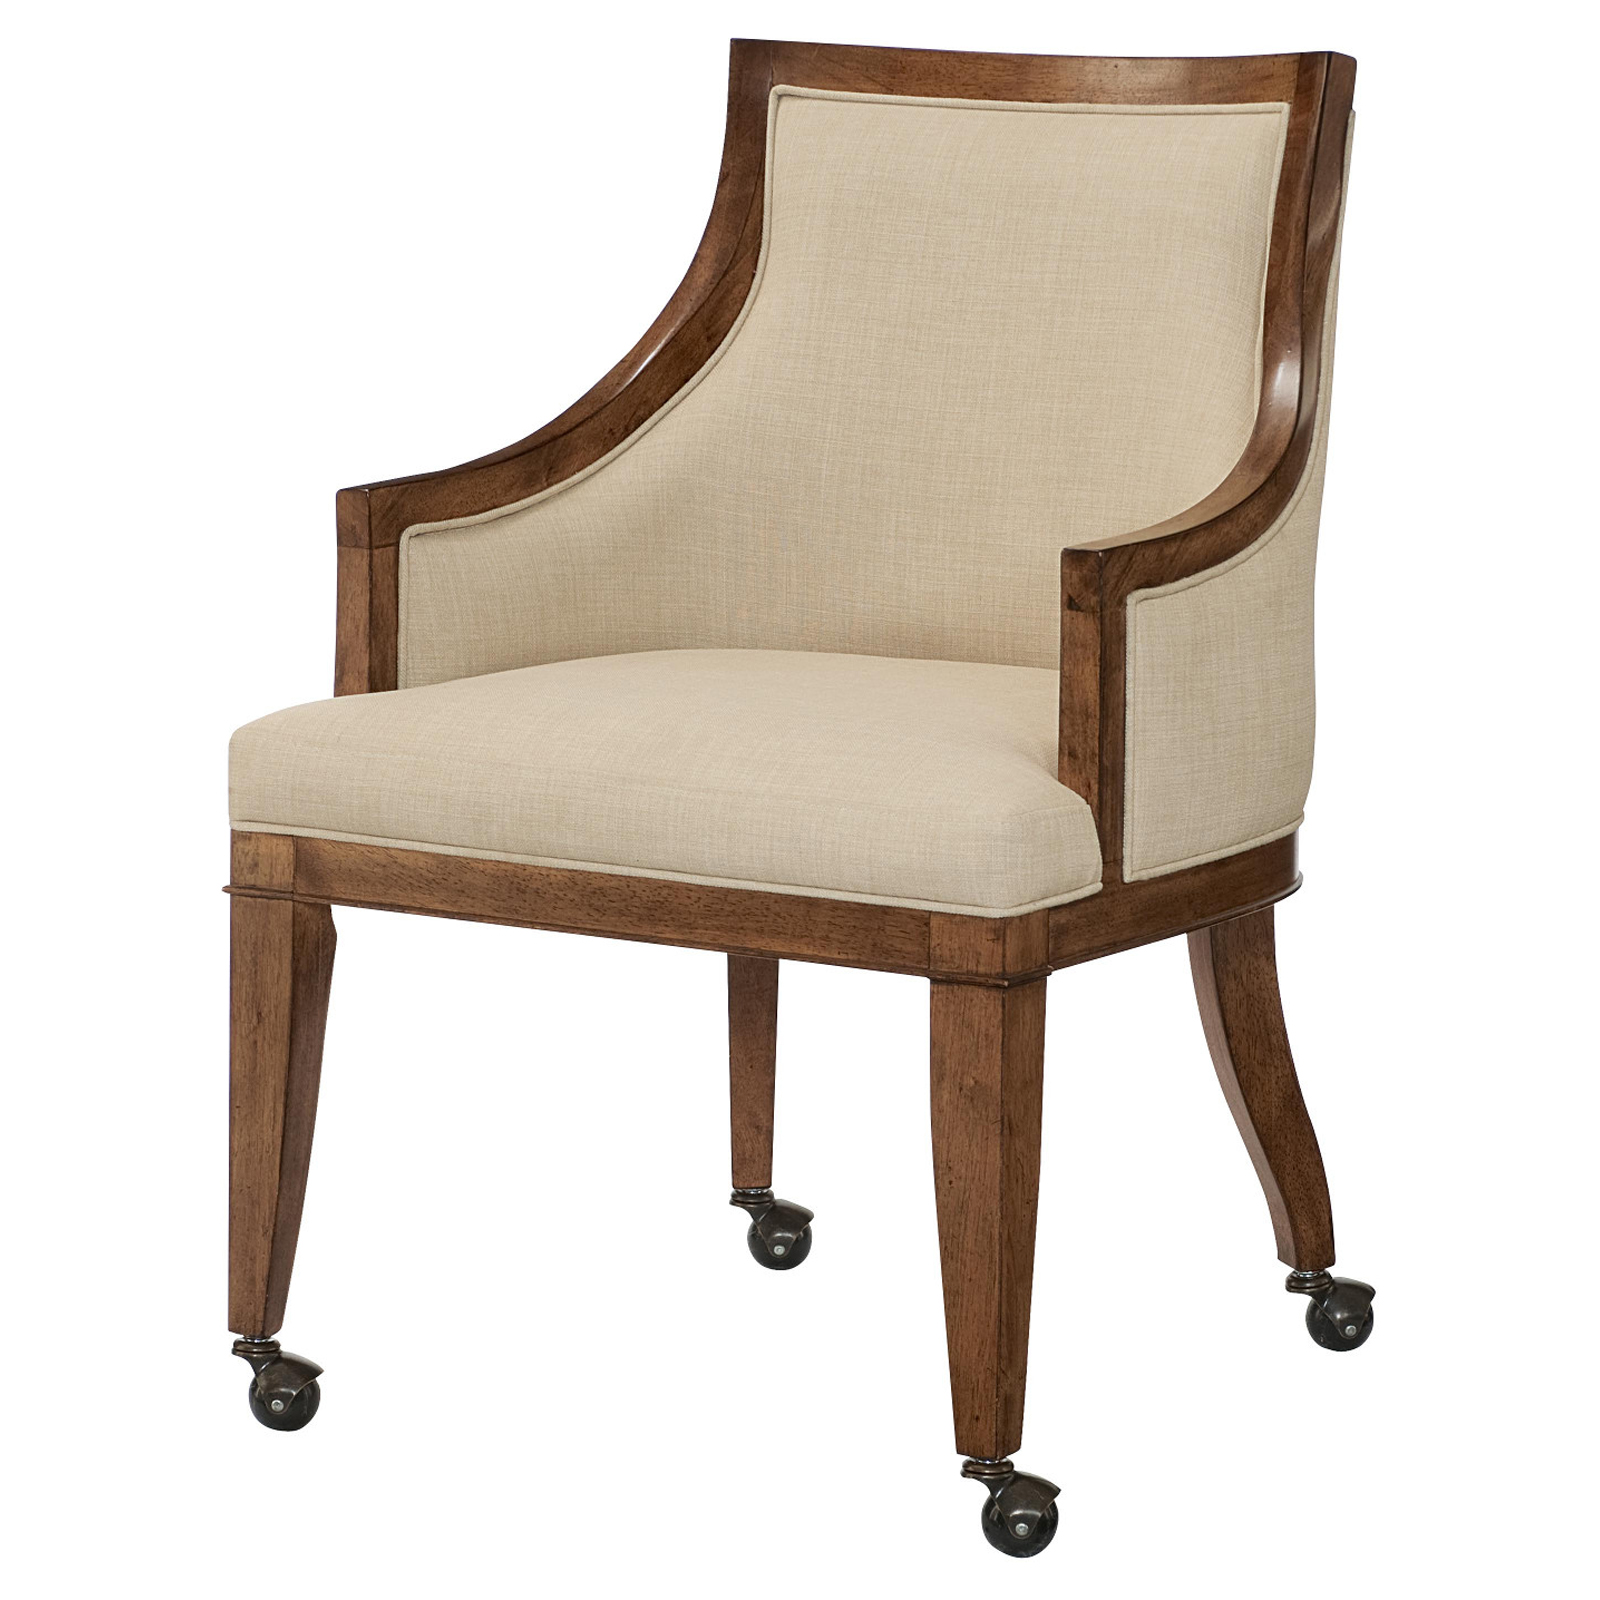 Dining Chairs With Casters American Drew Grove Point Caster Arm Chair Set Of 2